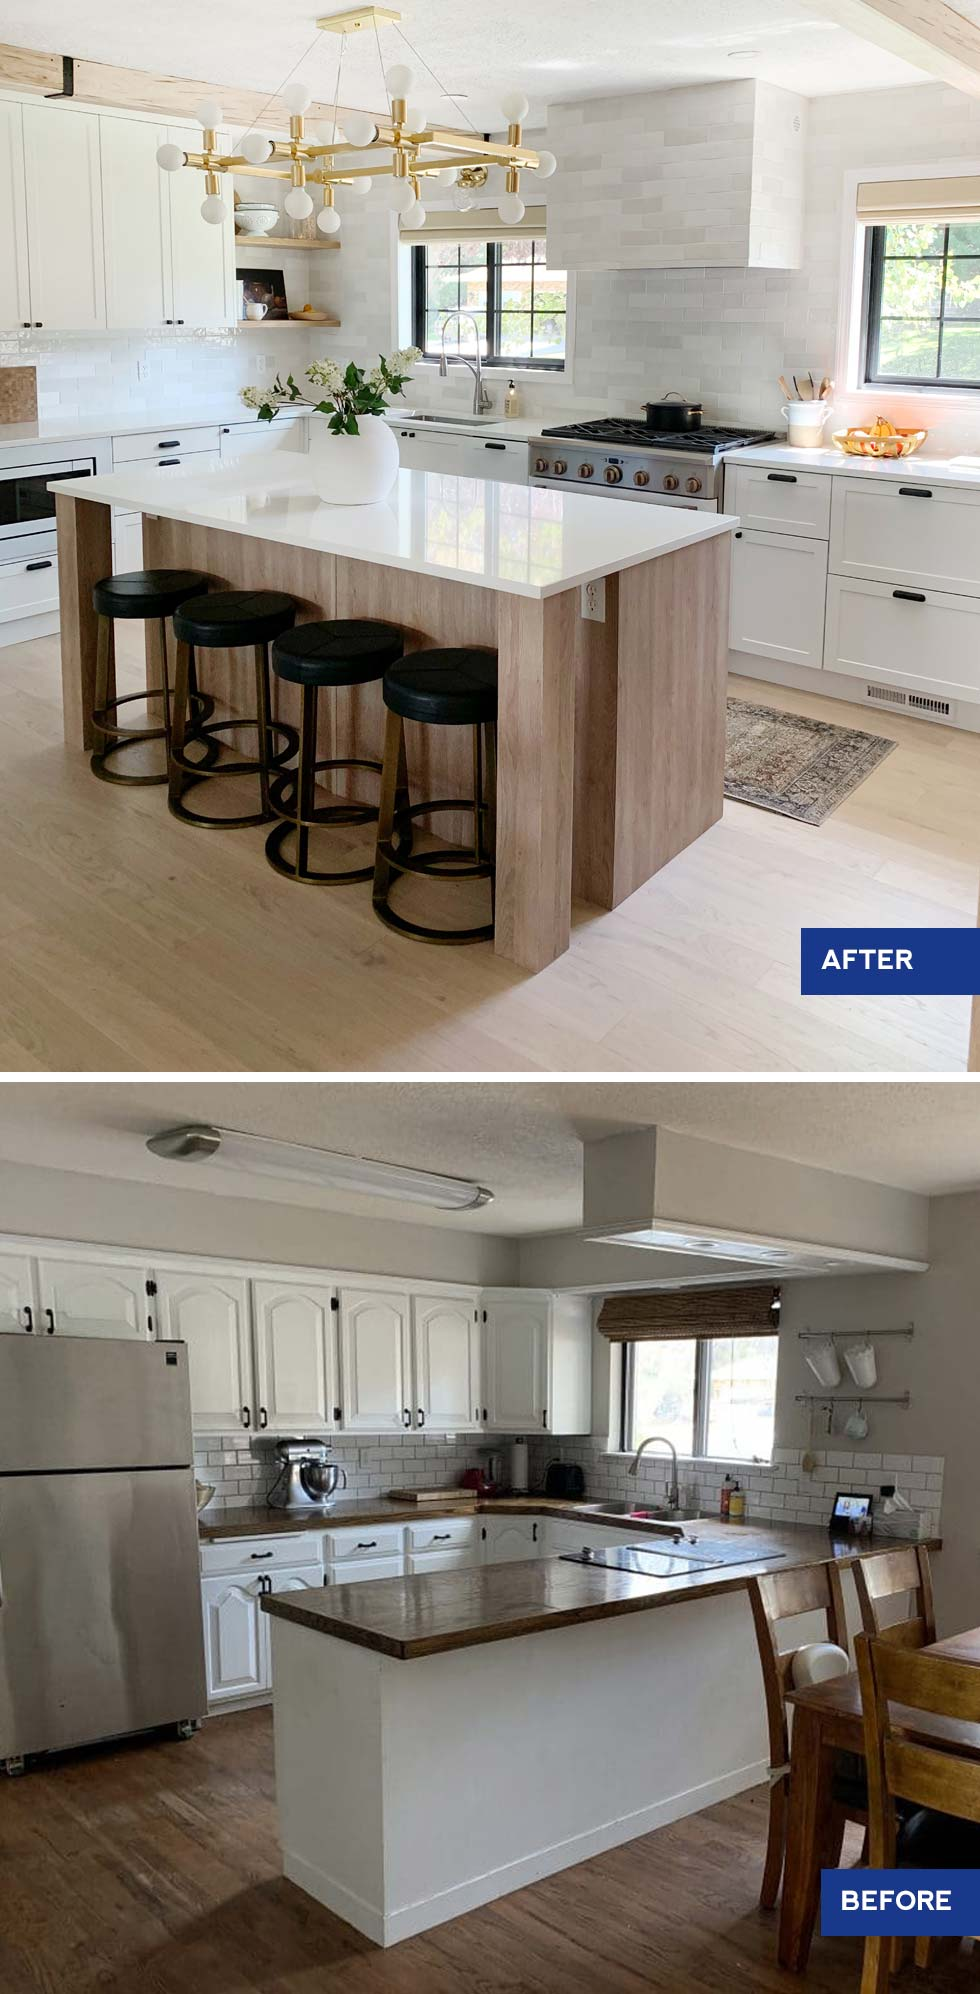 before and after shot of kitchen renovation with island and light wood cabinets